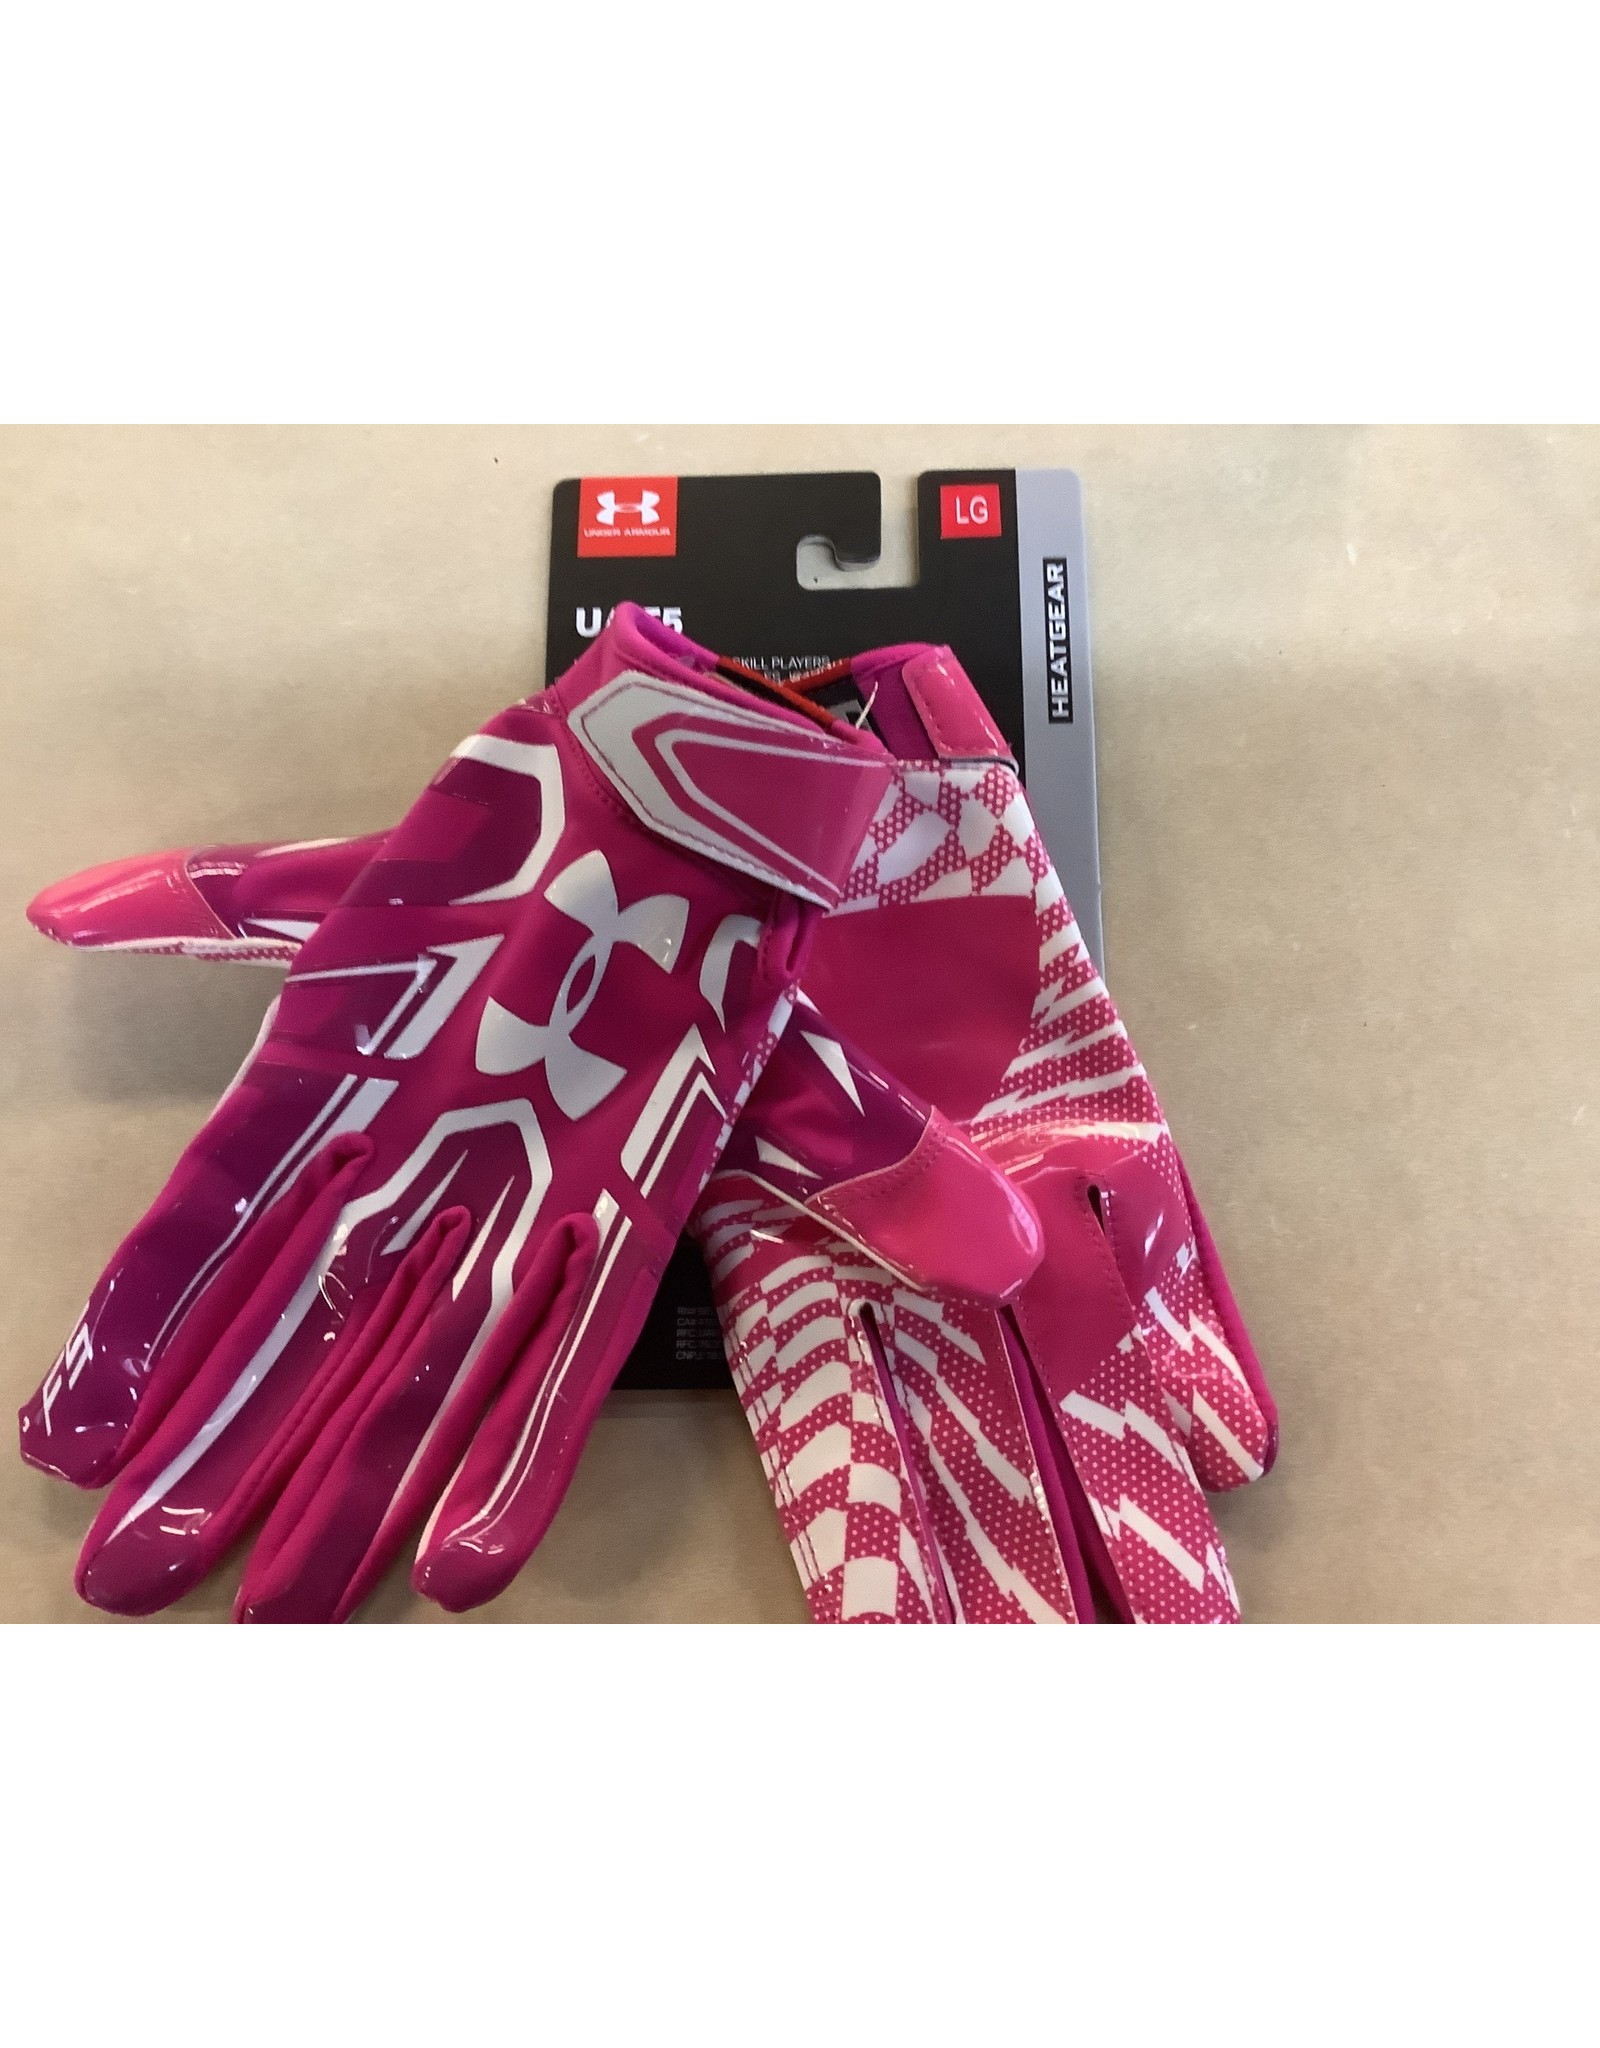 Under Armour UA F5 Football Gloves